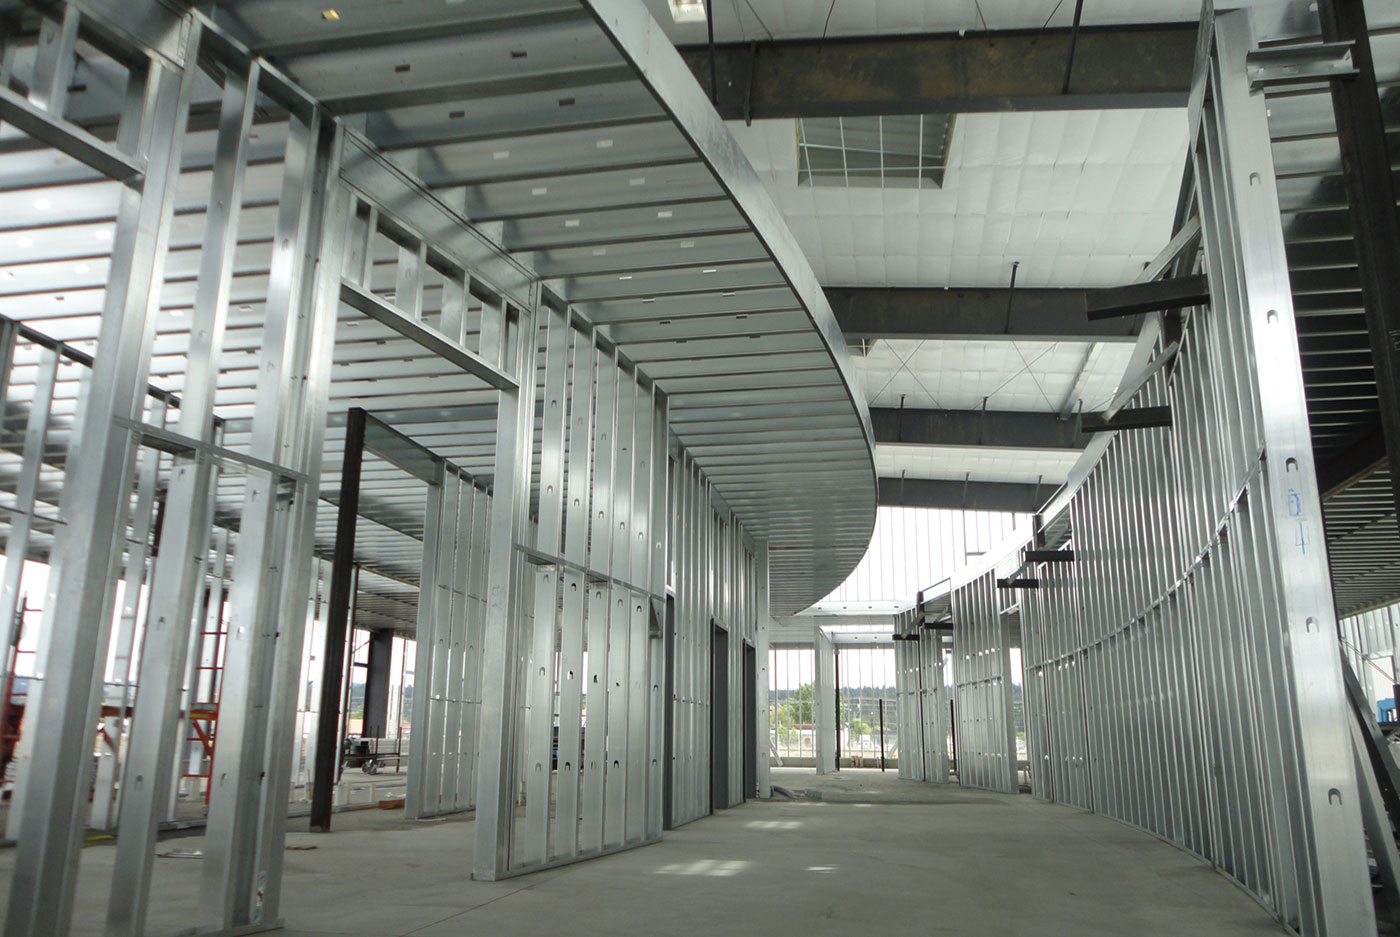 light best prices stud sdsdssdsd system drywall metal steel partition with